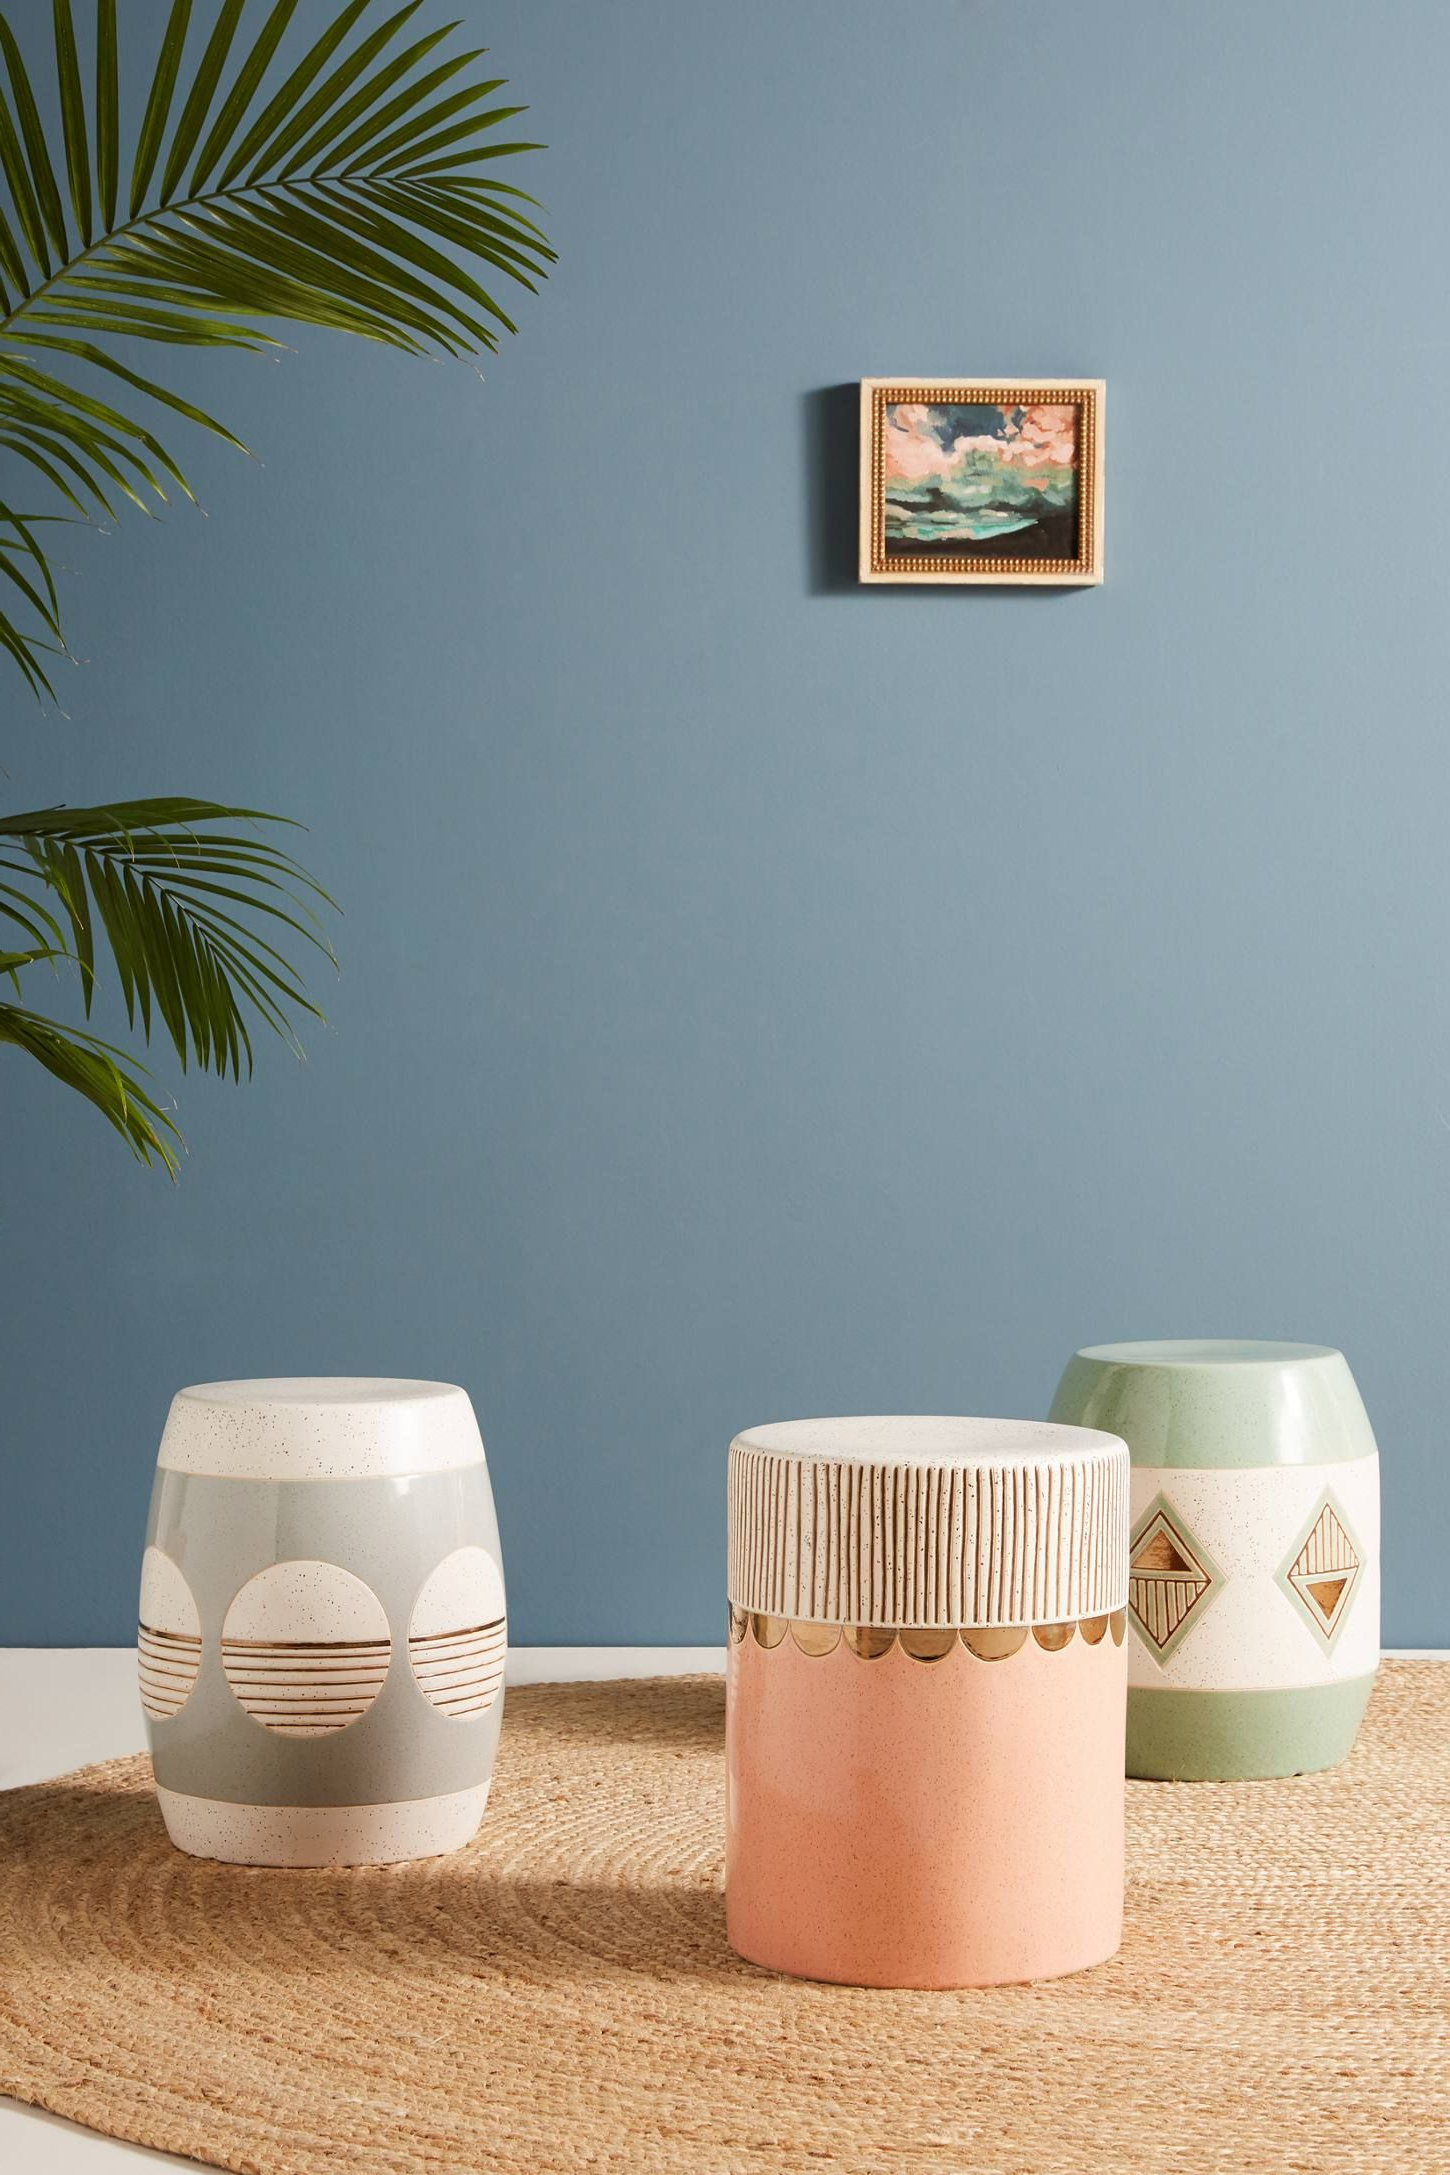 Svendsen Ceramic Garden Stools For Latest Cathy Terepocki Ceramic Stool (View 17 of 30)